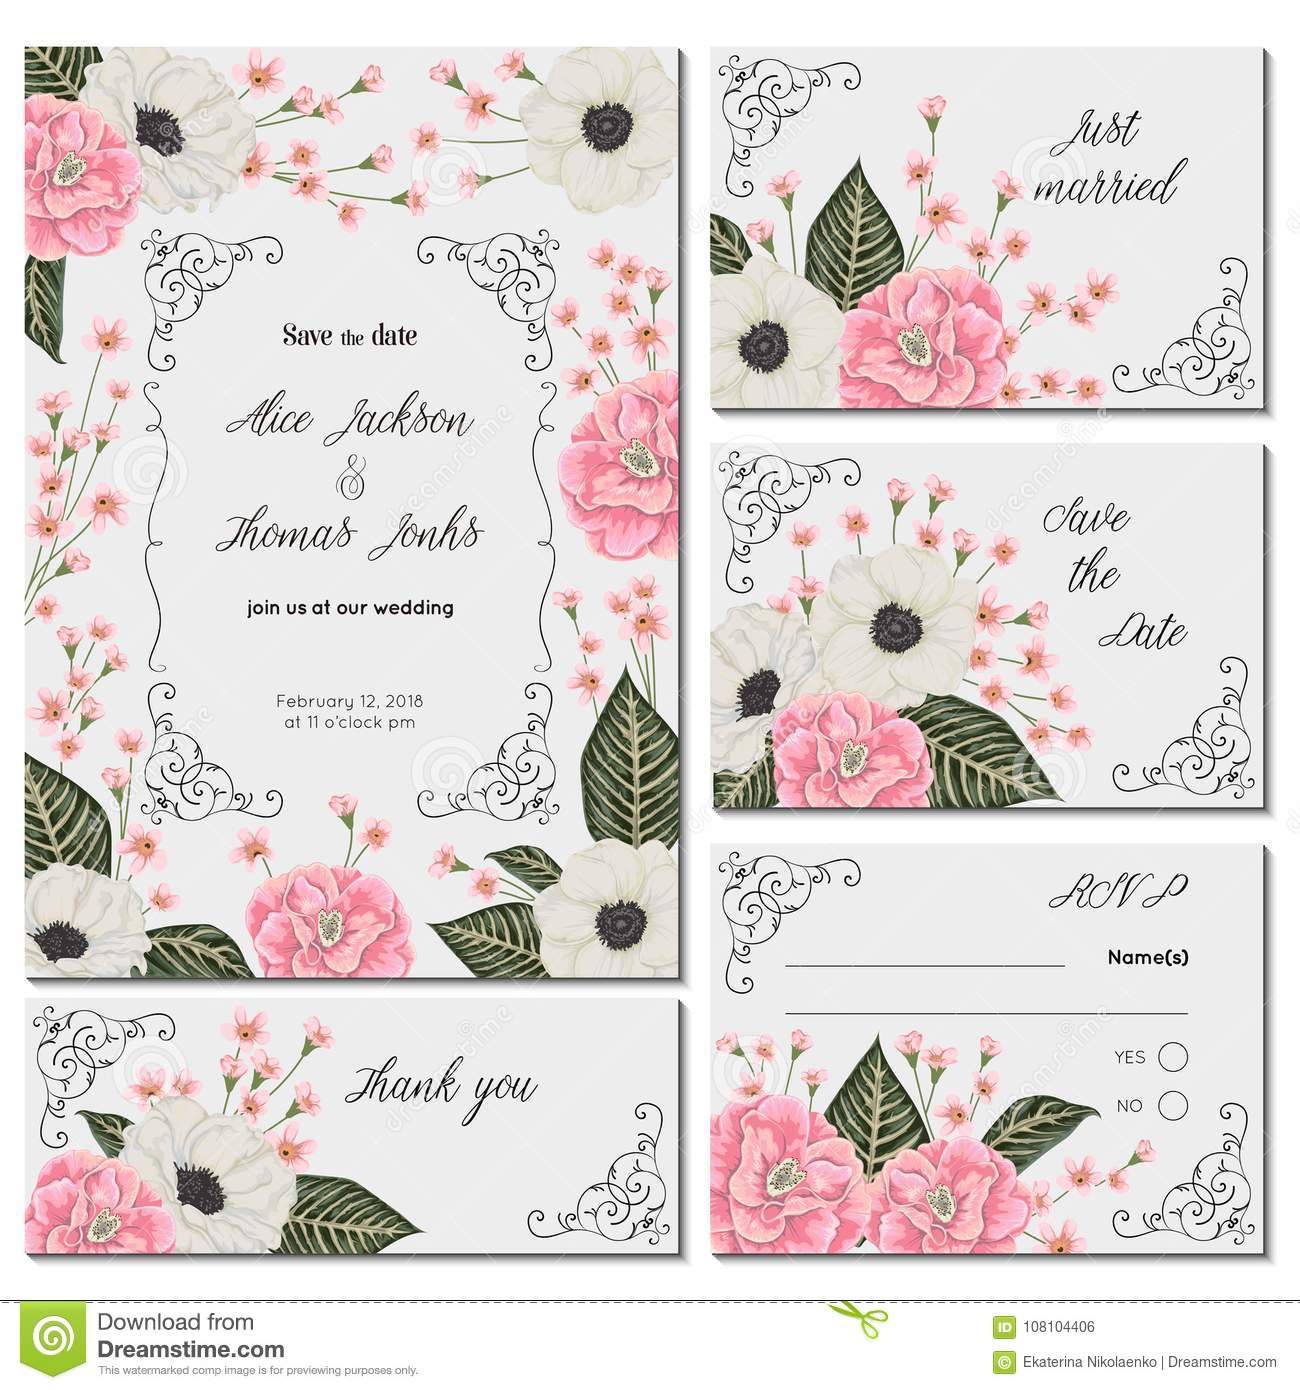 Save The Date Card With Pink Camellias White Anemone Flowers And